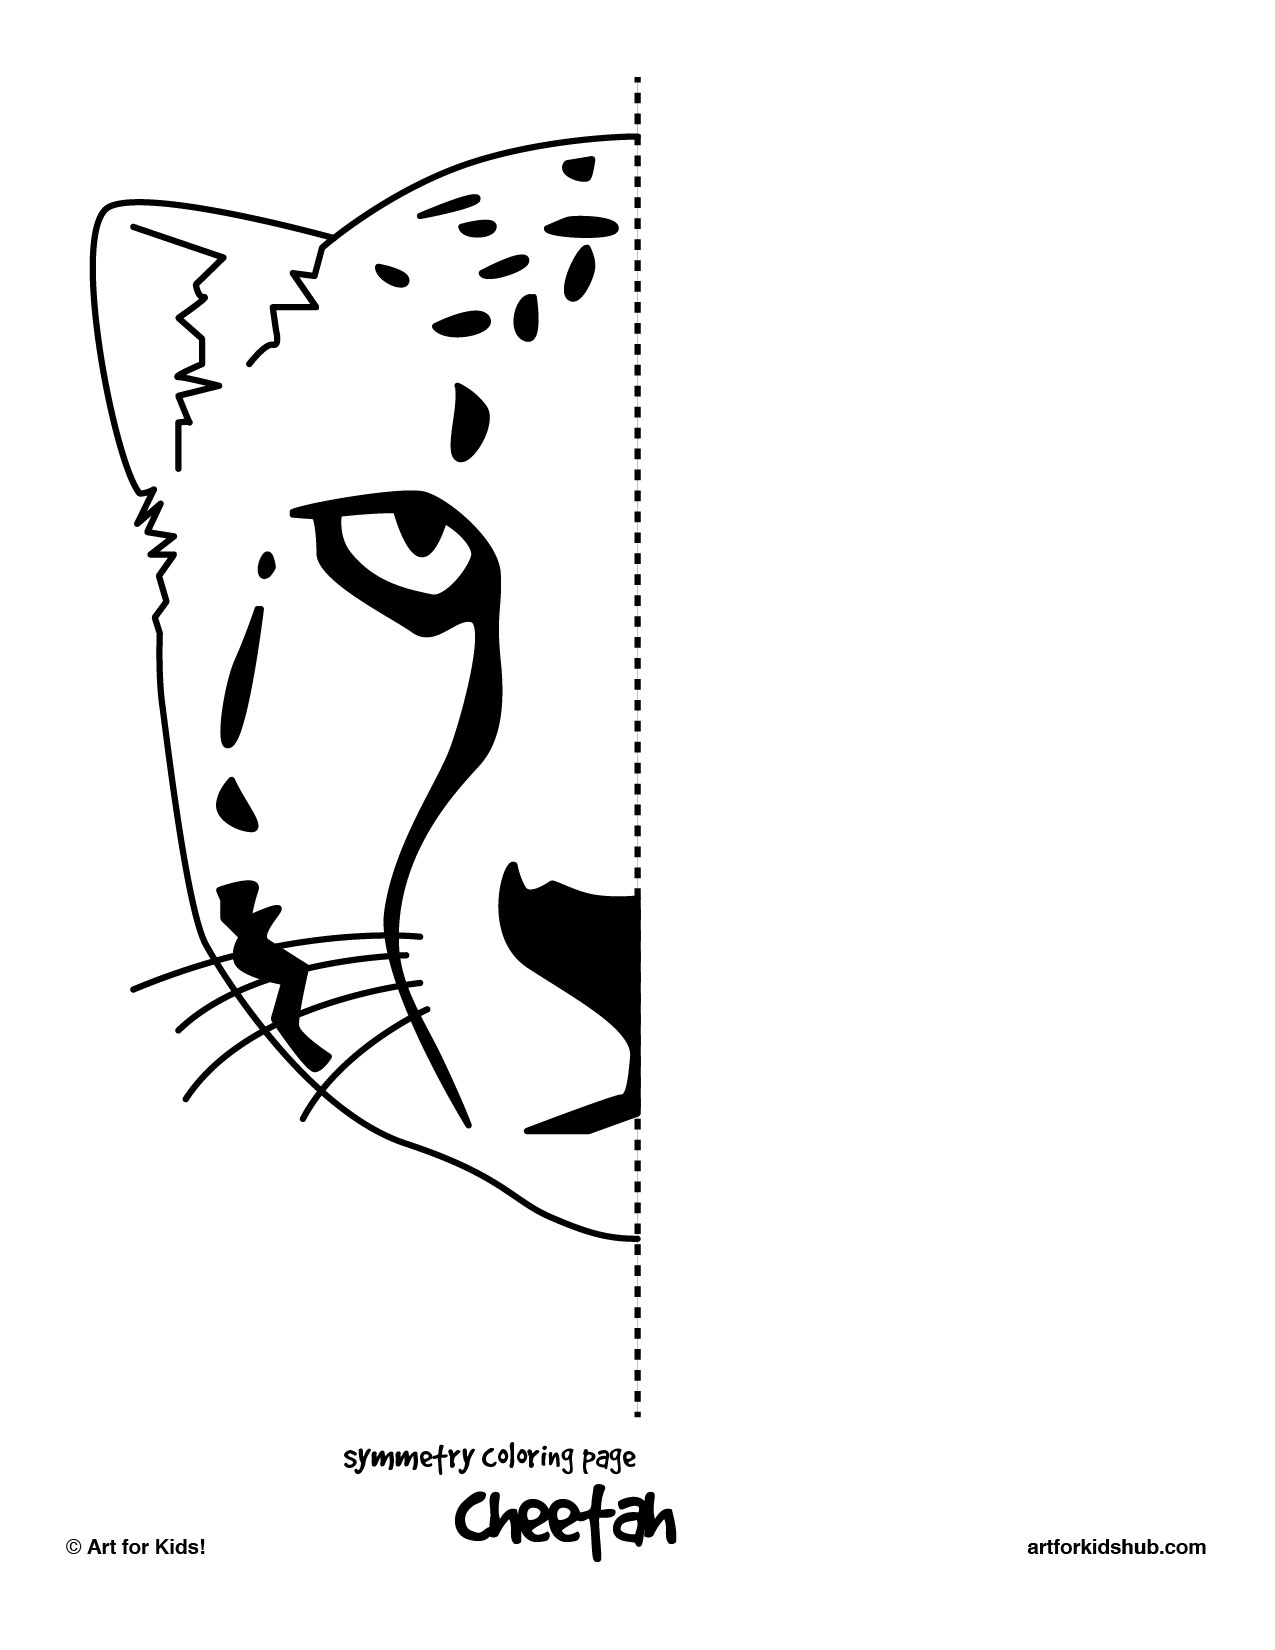 symmetrical coloring pages nicole39s free coloring pages symmetry coloring pages pages symmetrical coloring